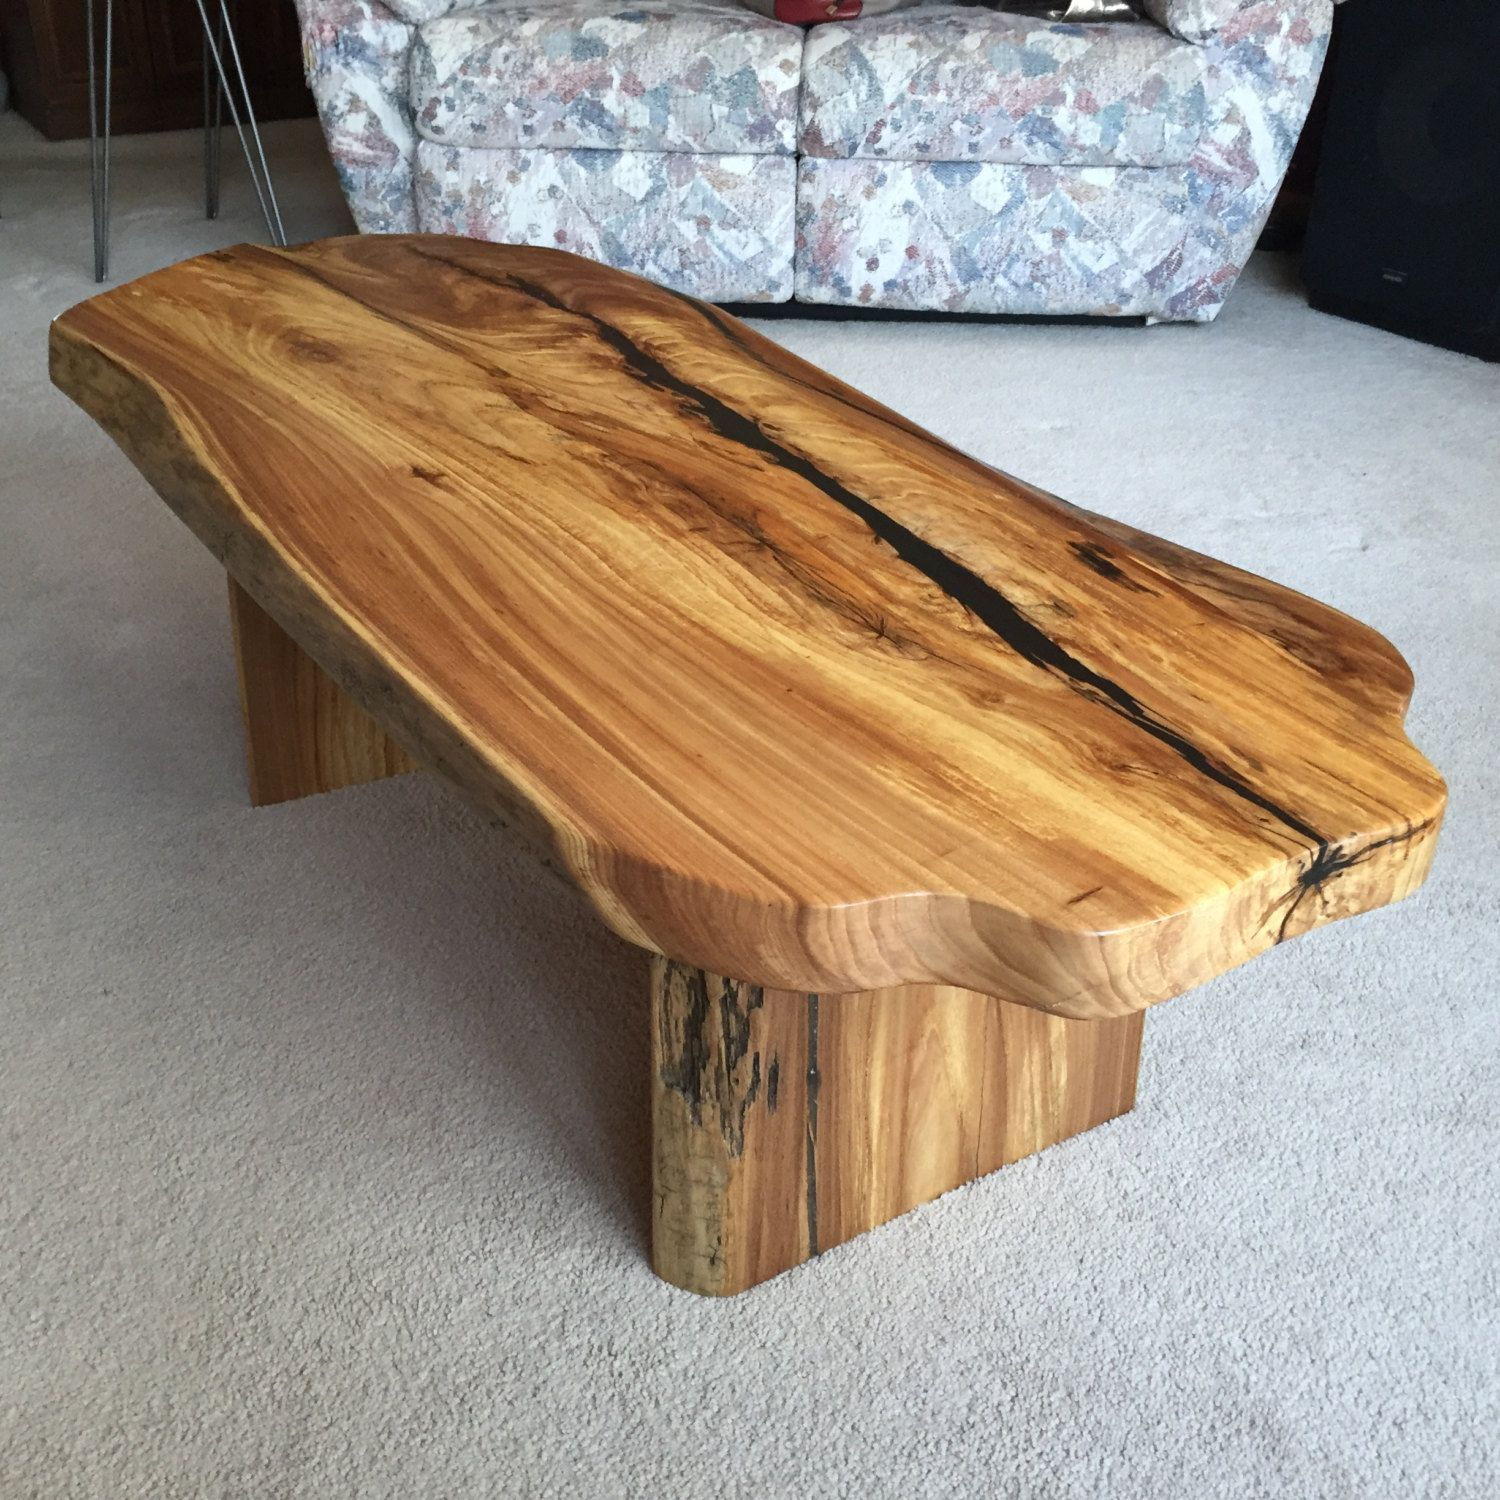 Unique Live Edge Coffee Table With Live Edge Wood Slab Legs There